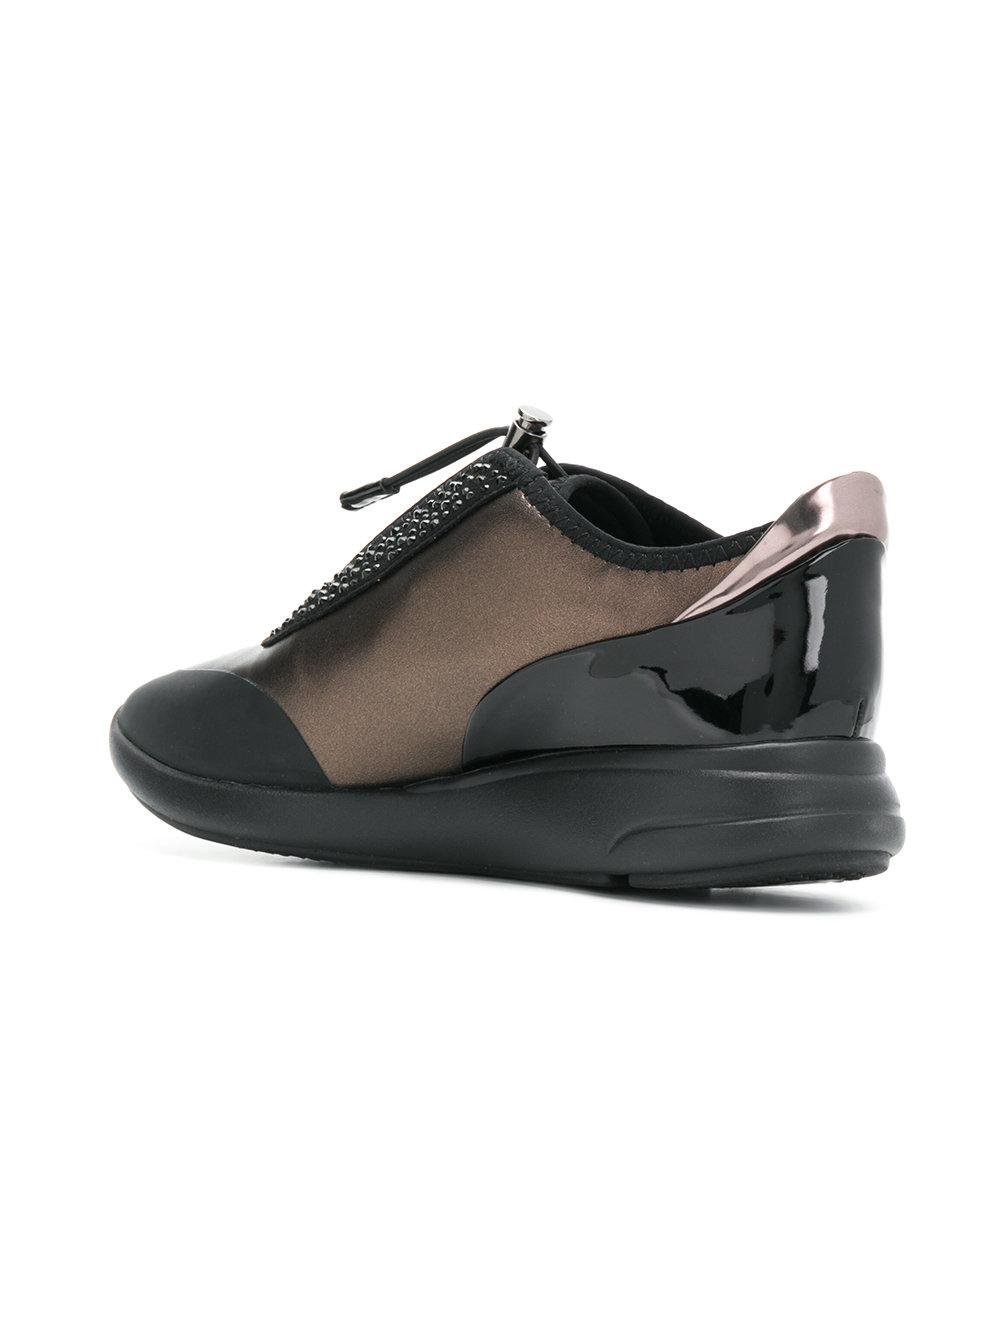 Geox Synthetic Embellished Sneakers in Black